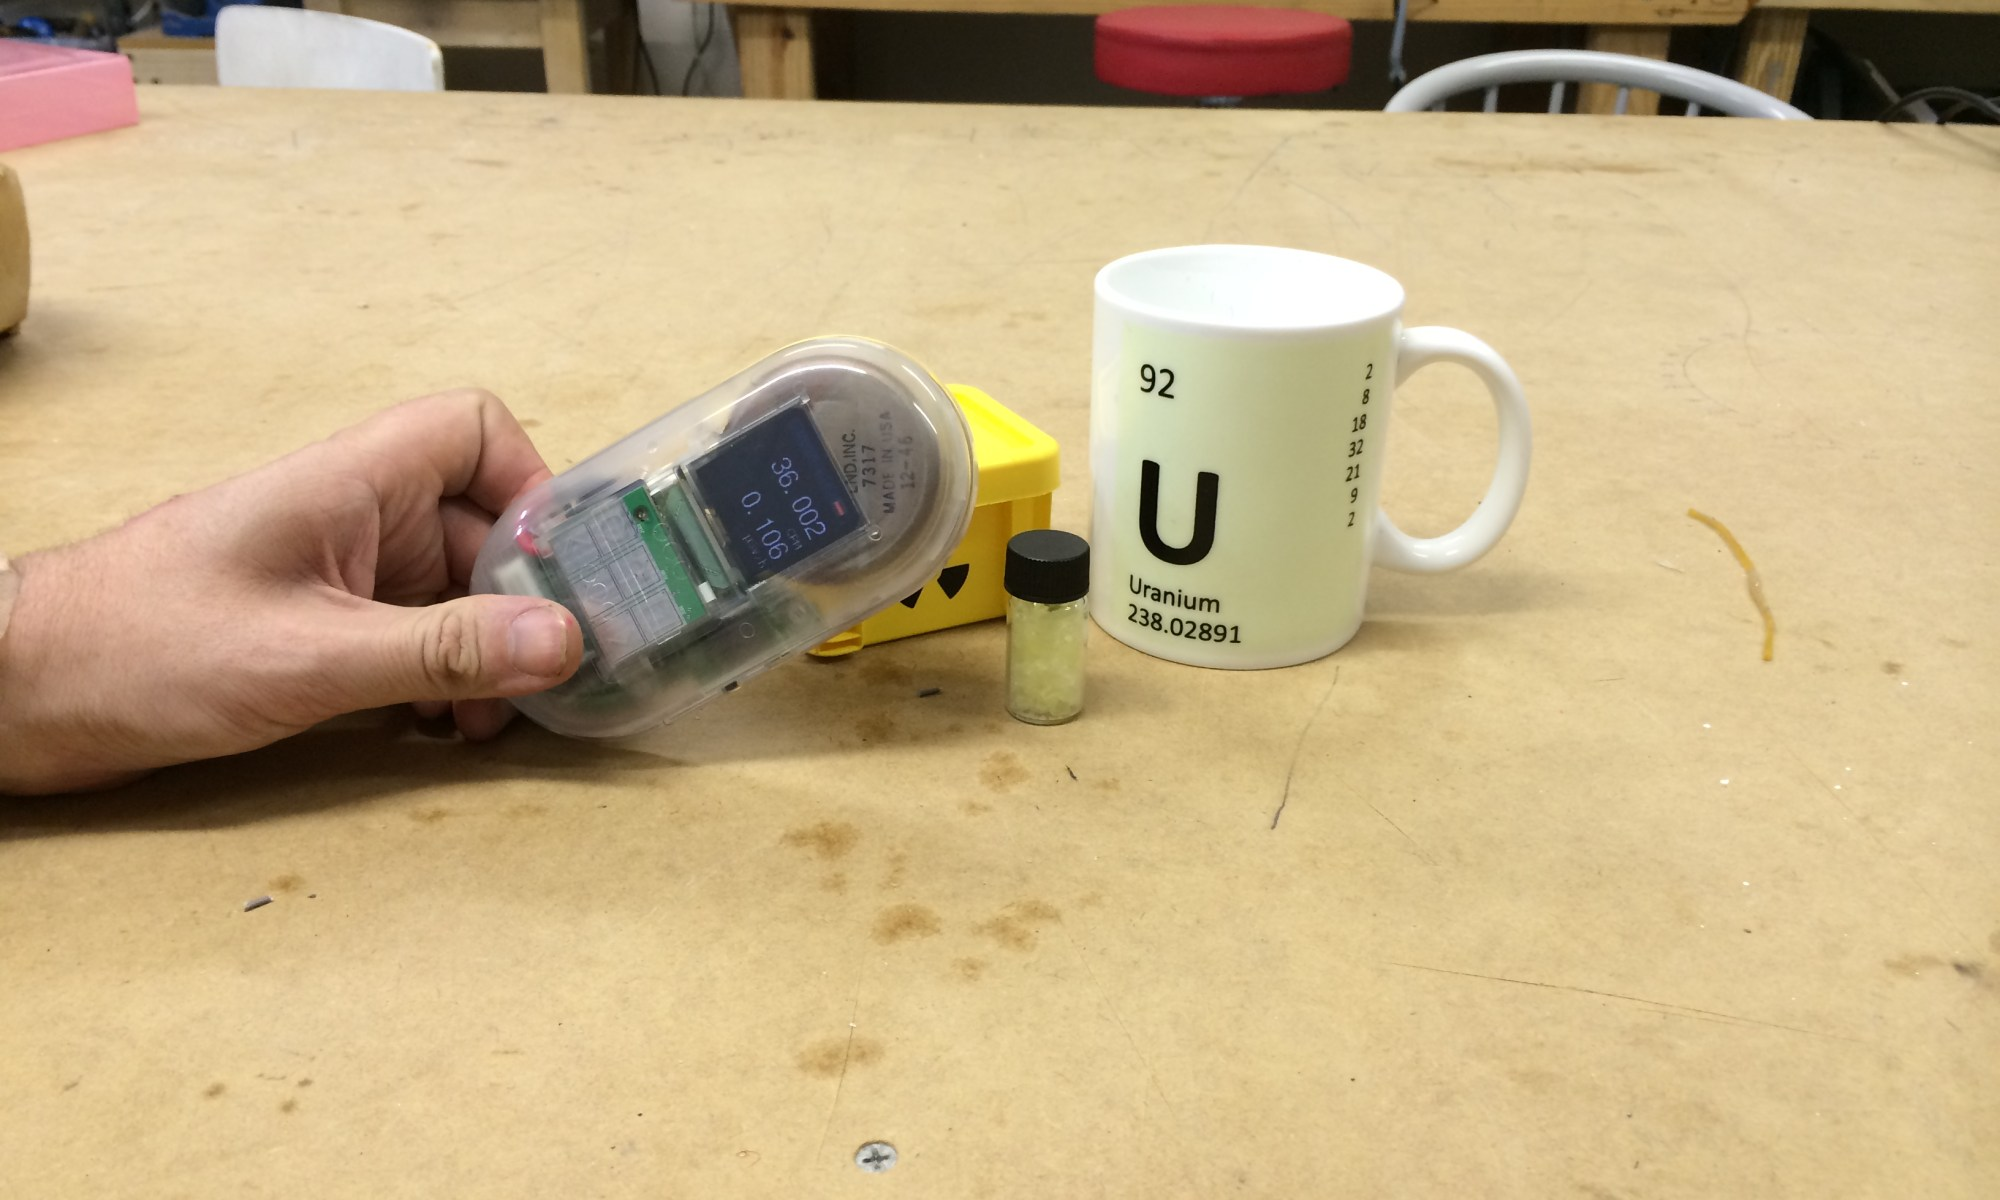 photo of a Geiger counter measuring the radioactivity of a mug